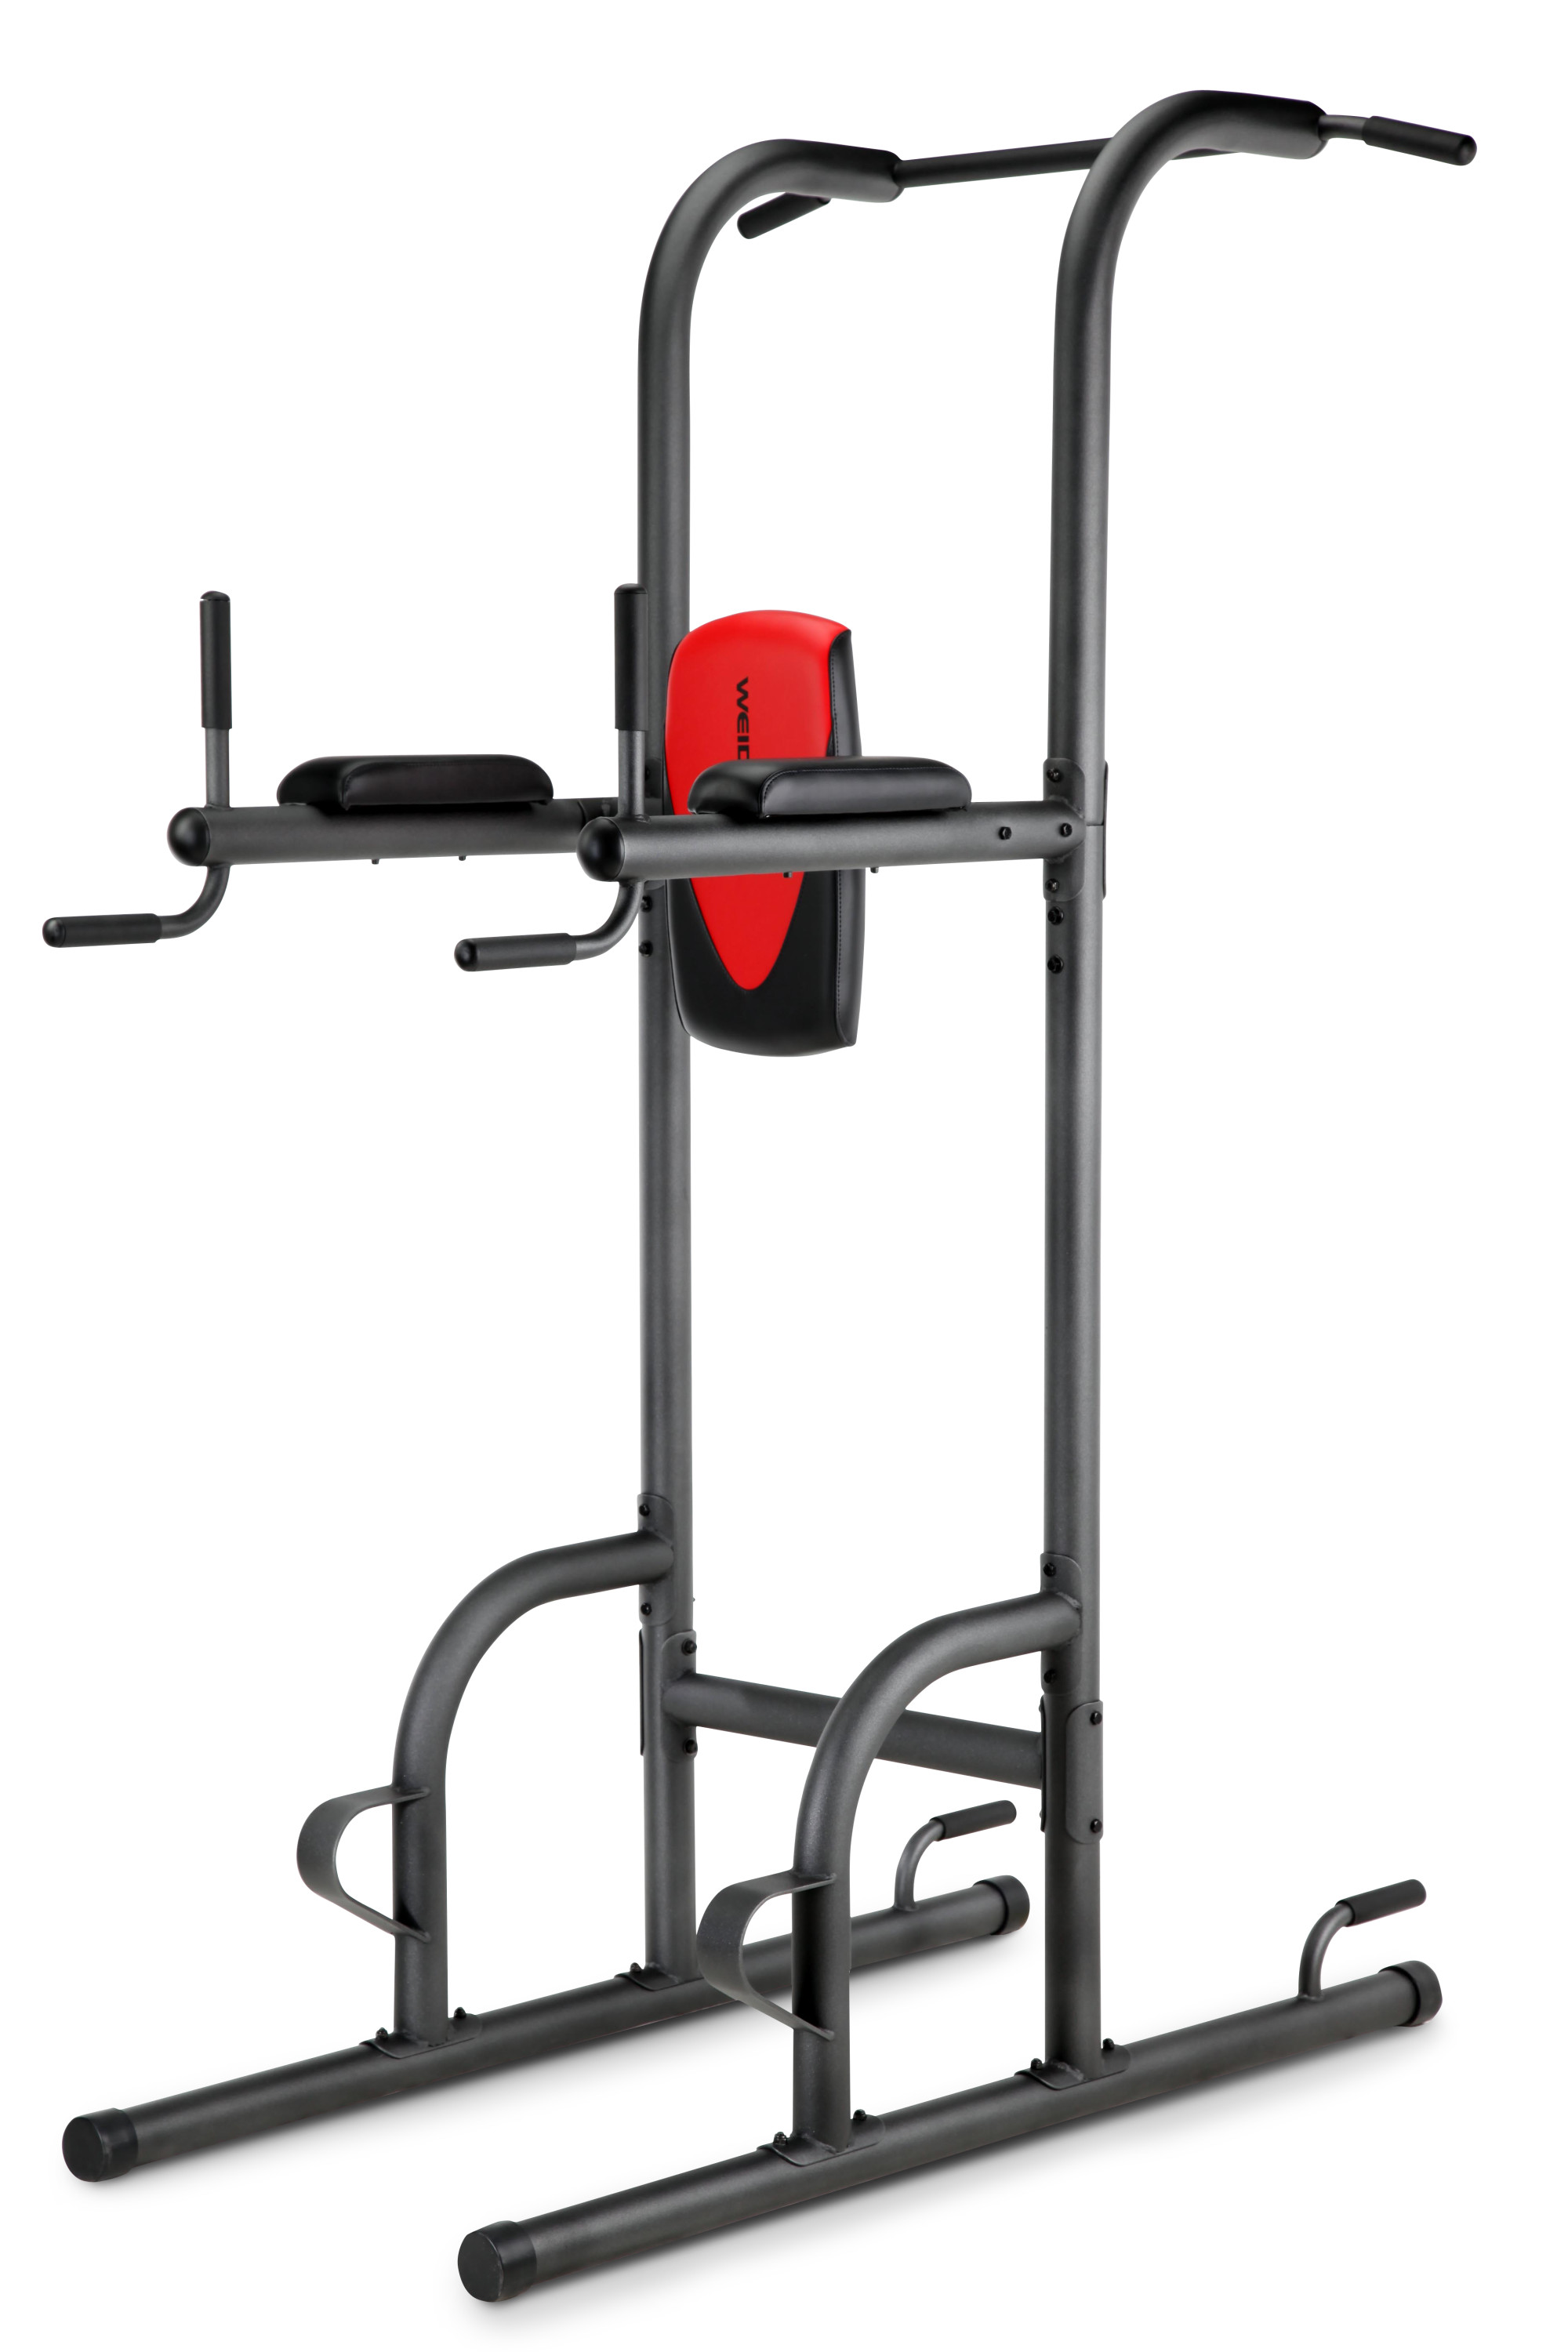 weider weider power tower with four workout stations and 300 lb user capacity from walmart accuweather